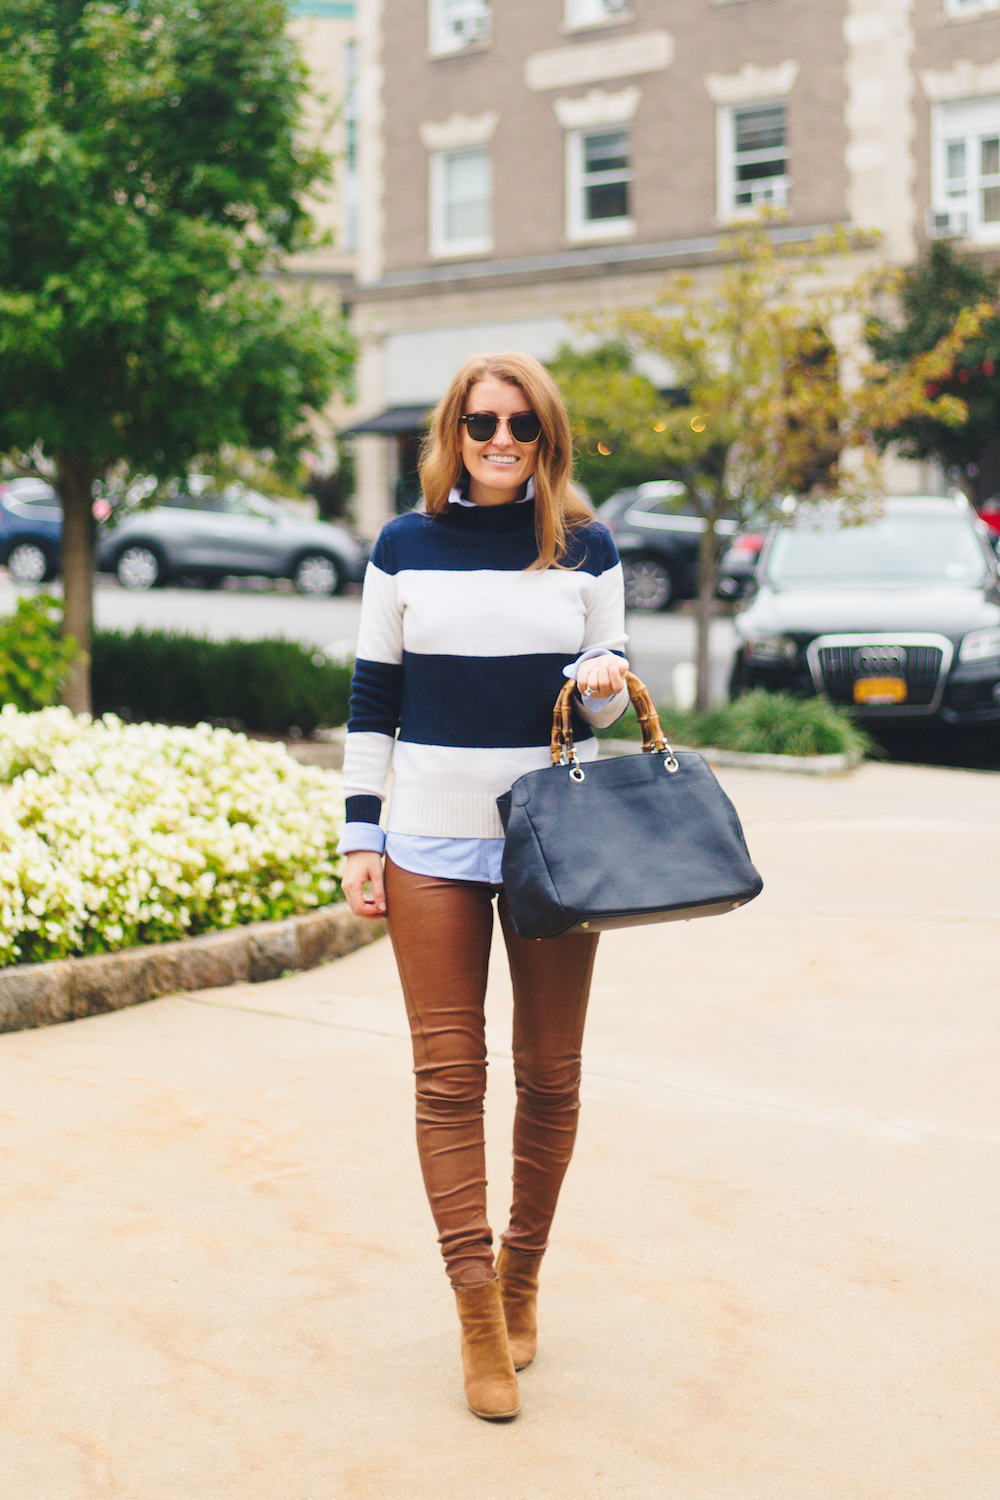 design darling j.crew 1988 rollneck sweater in wide stripes navy ivory with mark & graham bamboo elisabetta slouch handbag and polo ralph lauren leather skinny pant in cocoa bean